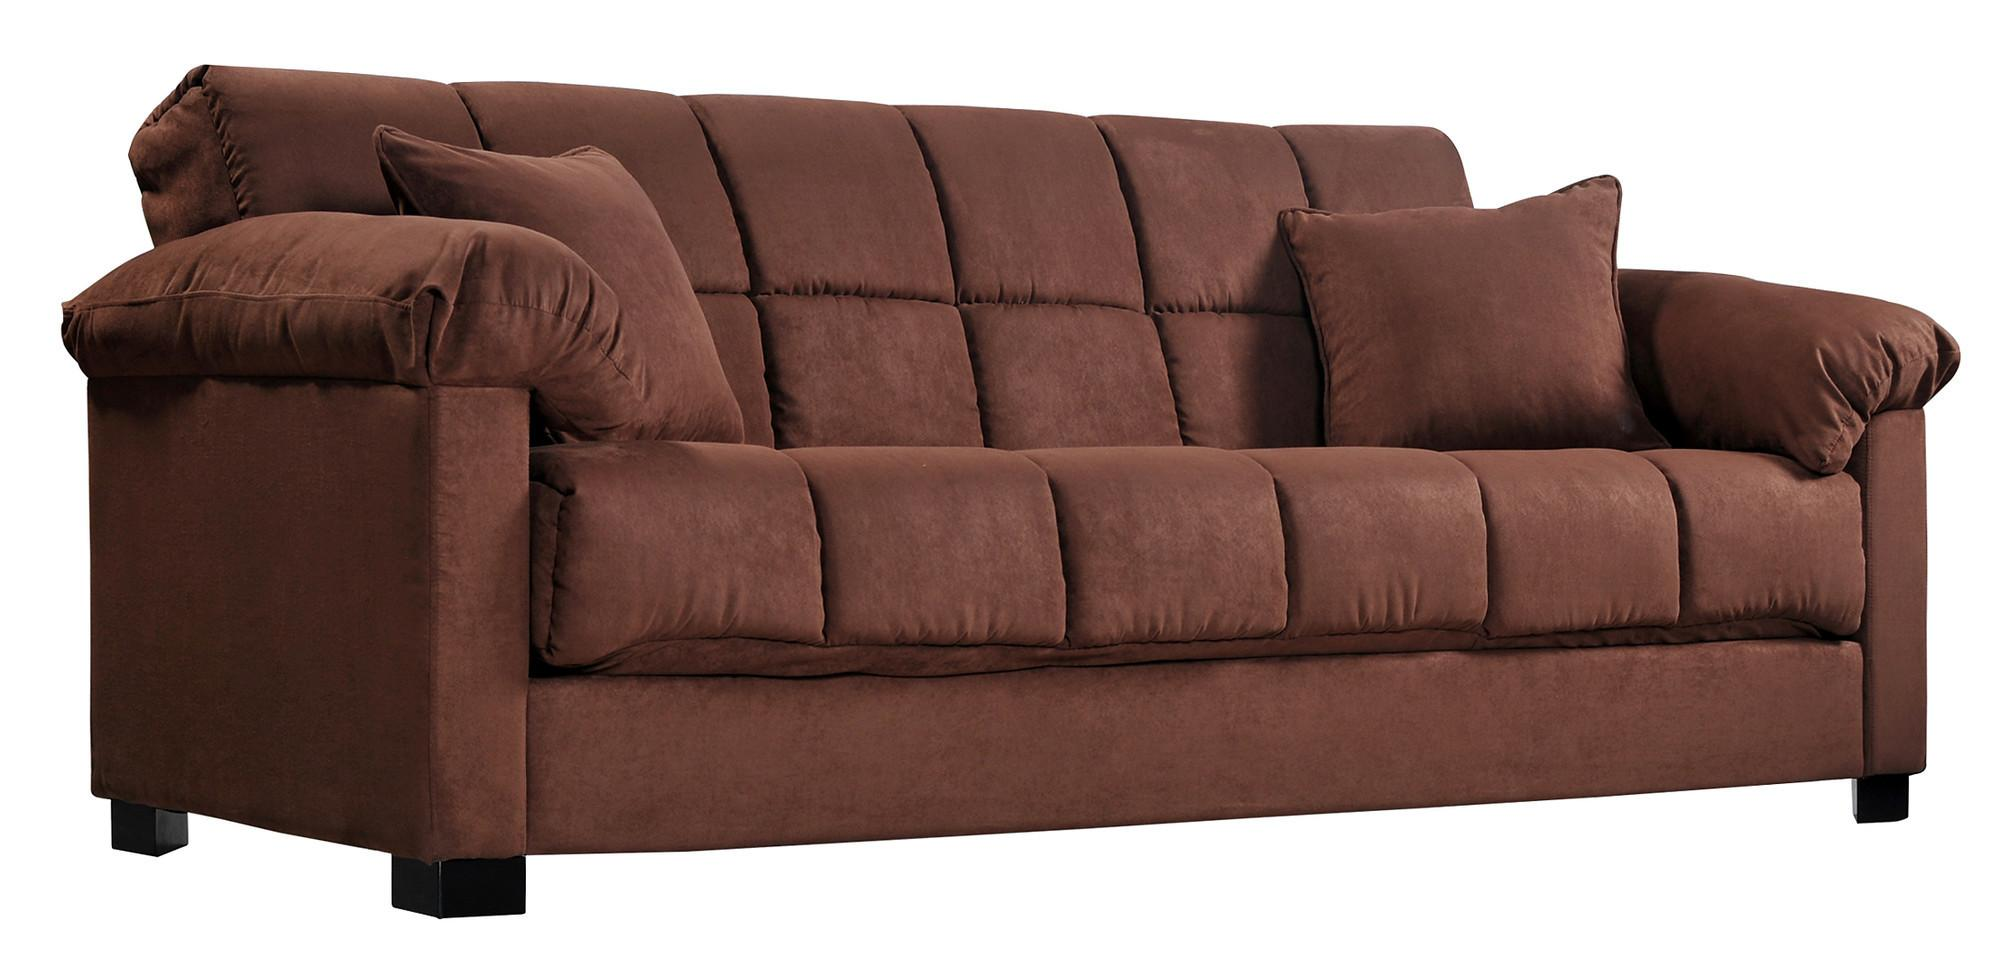 Sofas Comfortable Simmons Sleeper Sofa Cozy